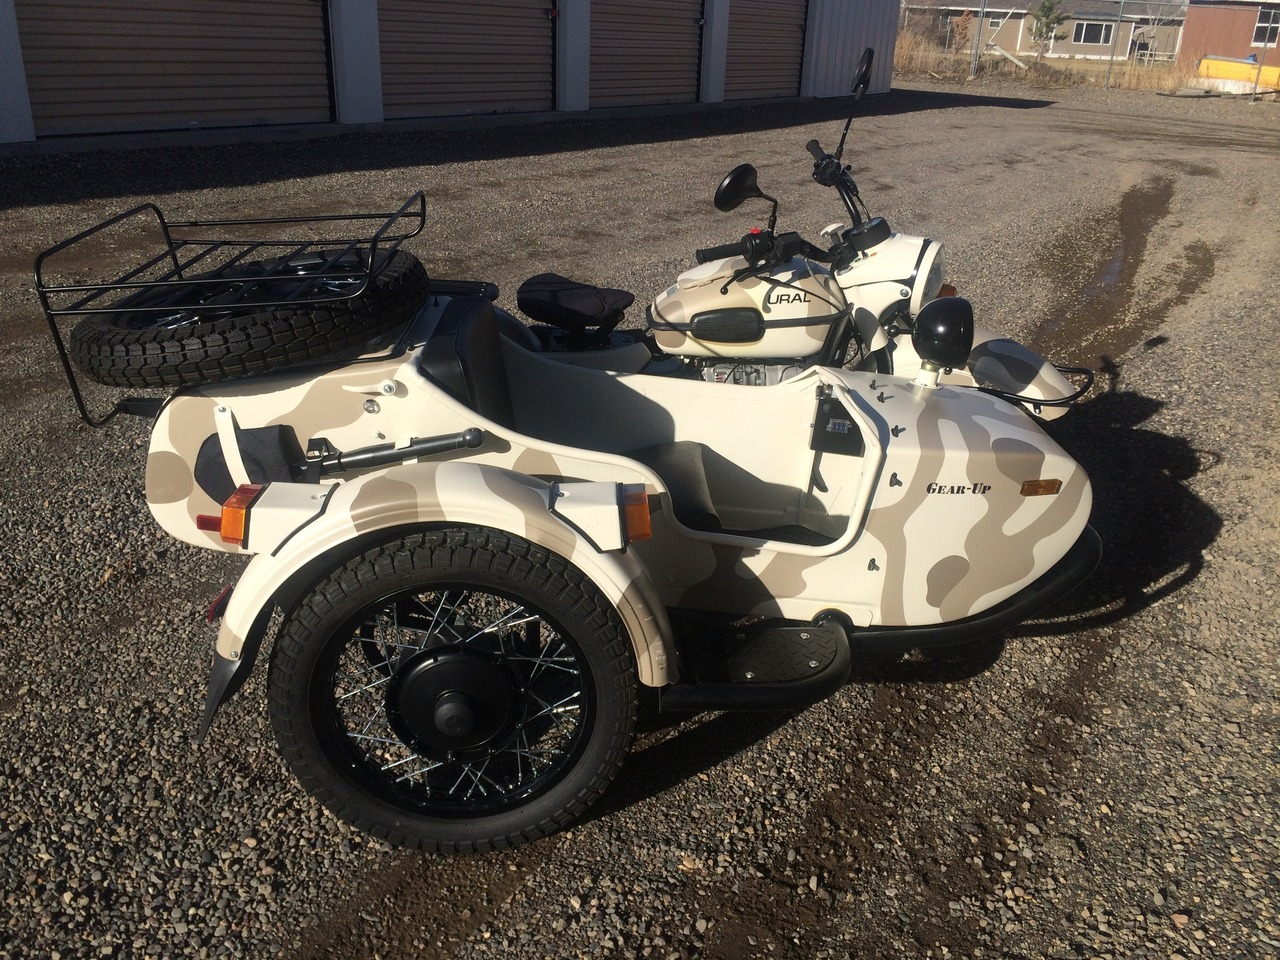 2013 Ural Gear-Up 2WD, motorcycle listing